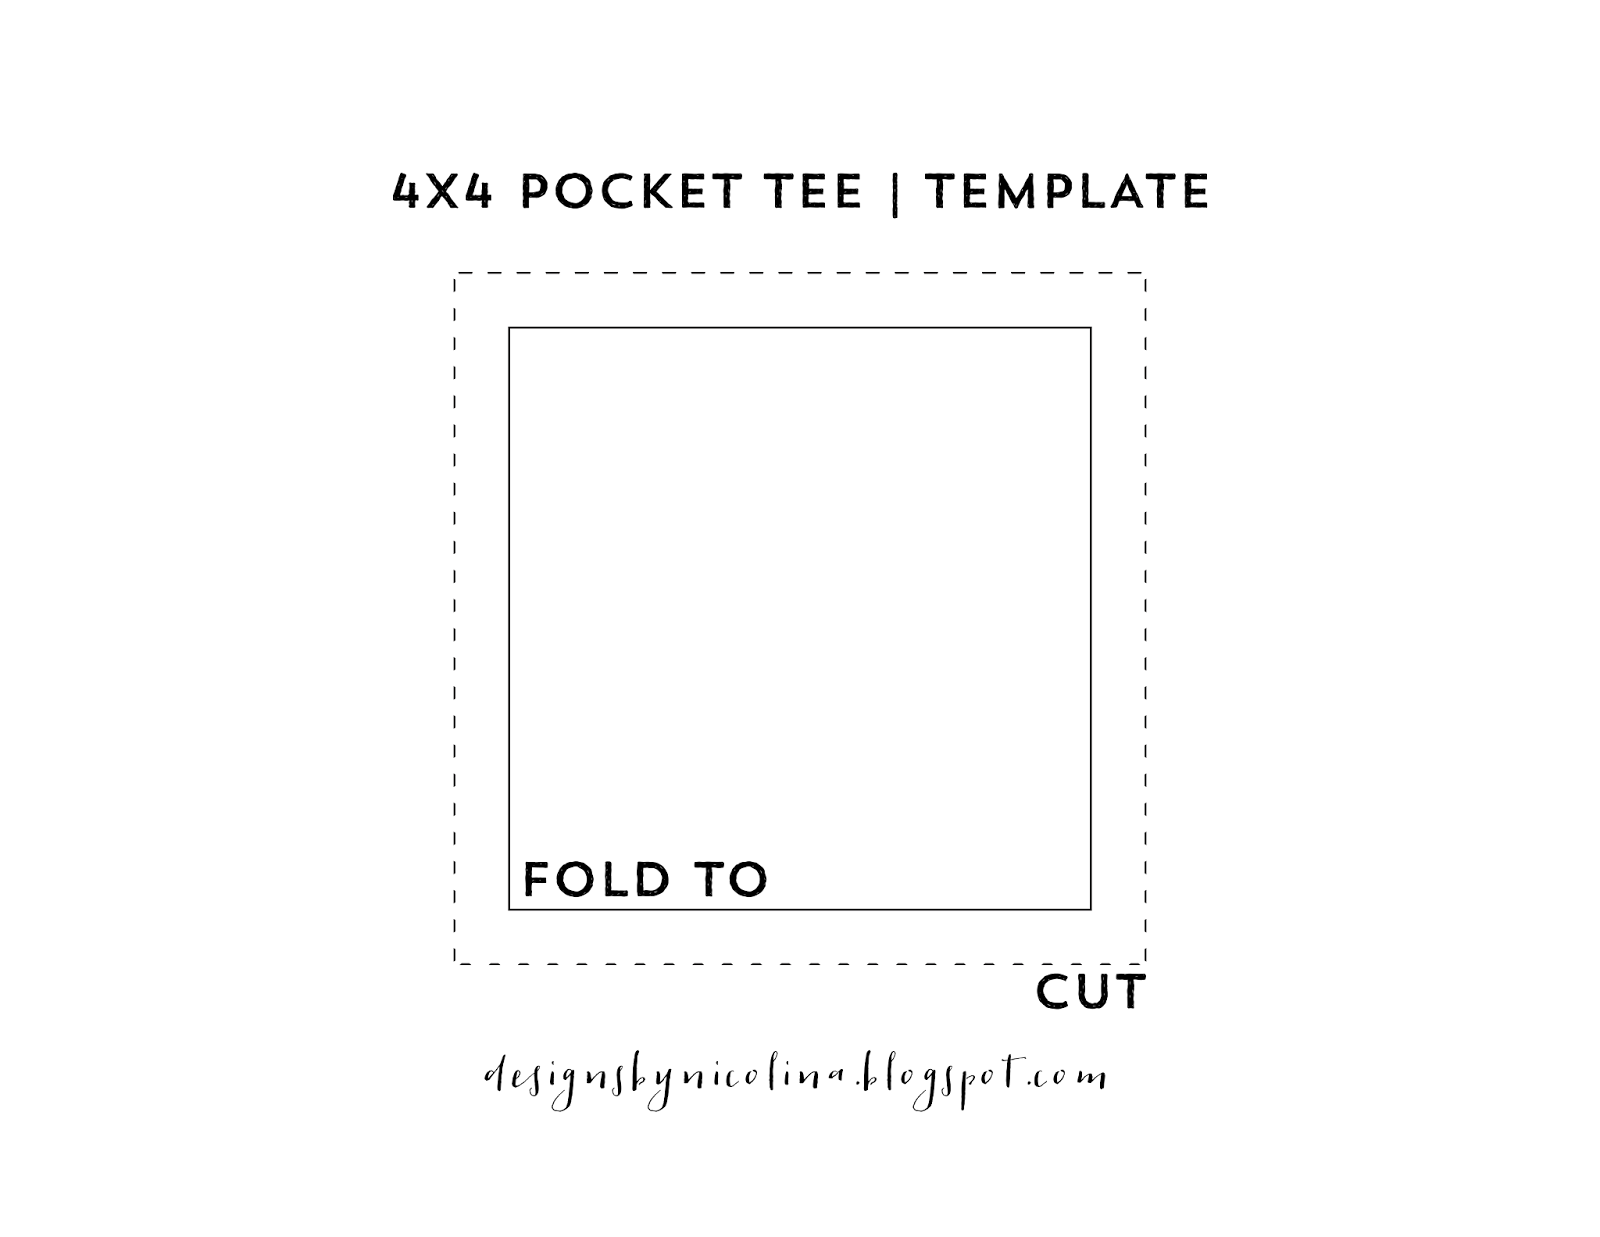 Designs by nicolina no sew disney inspired pocket tee for 4x4 label template